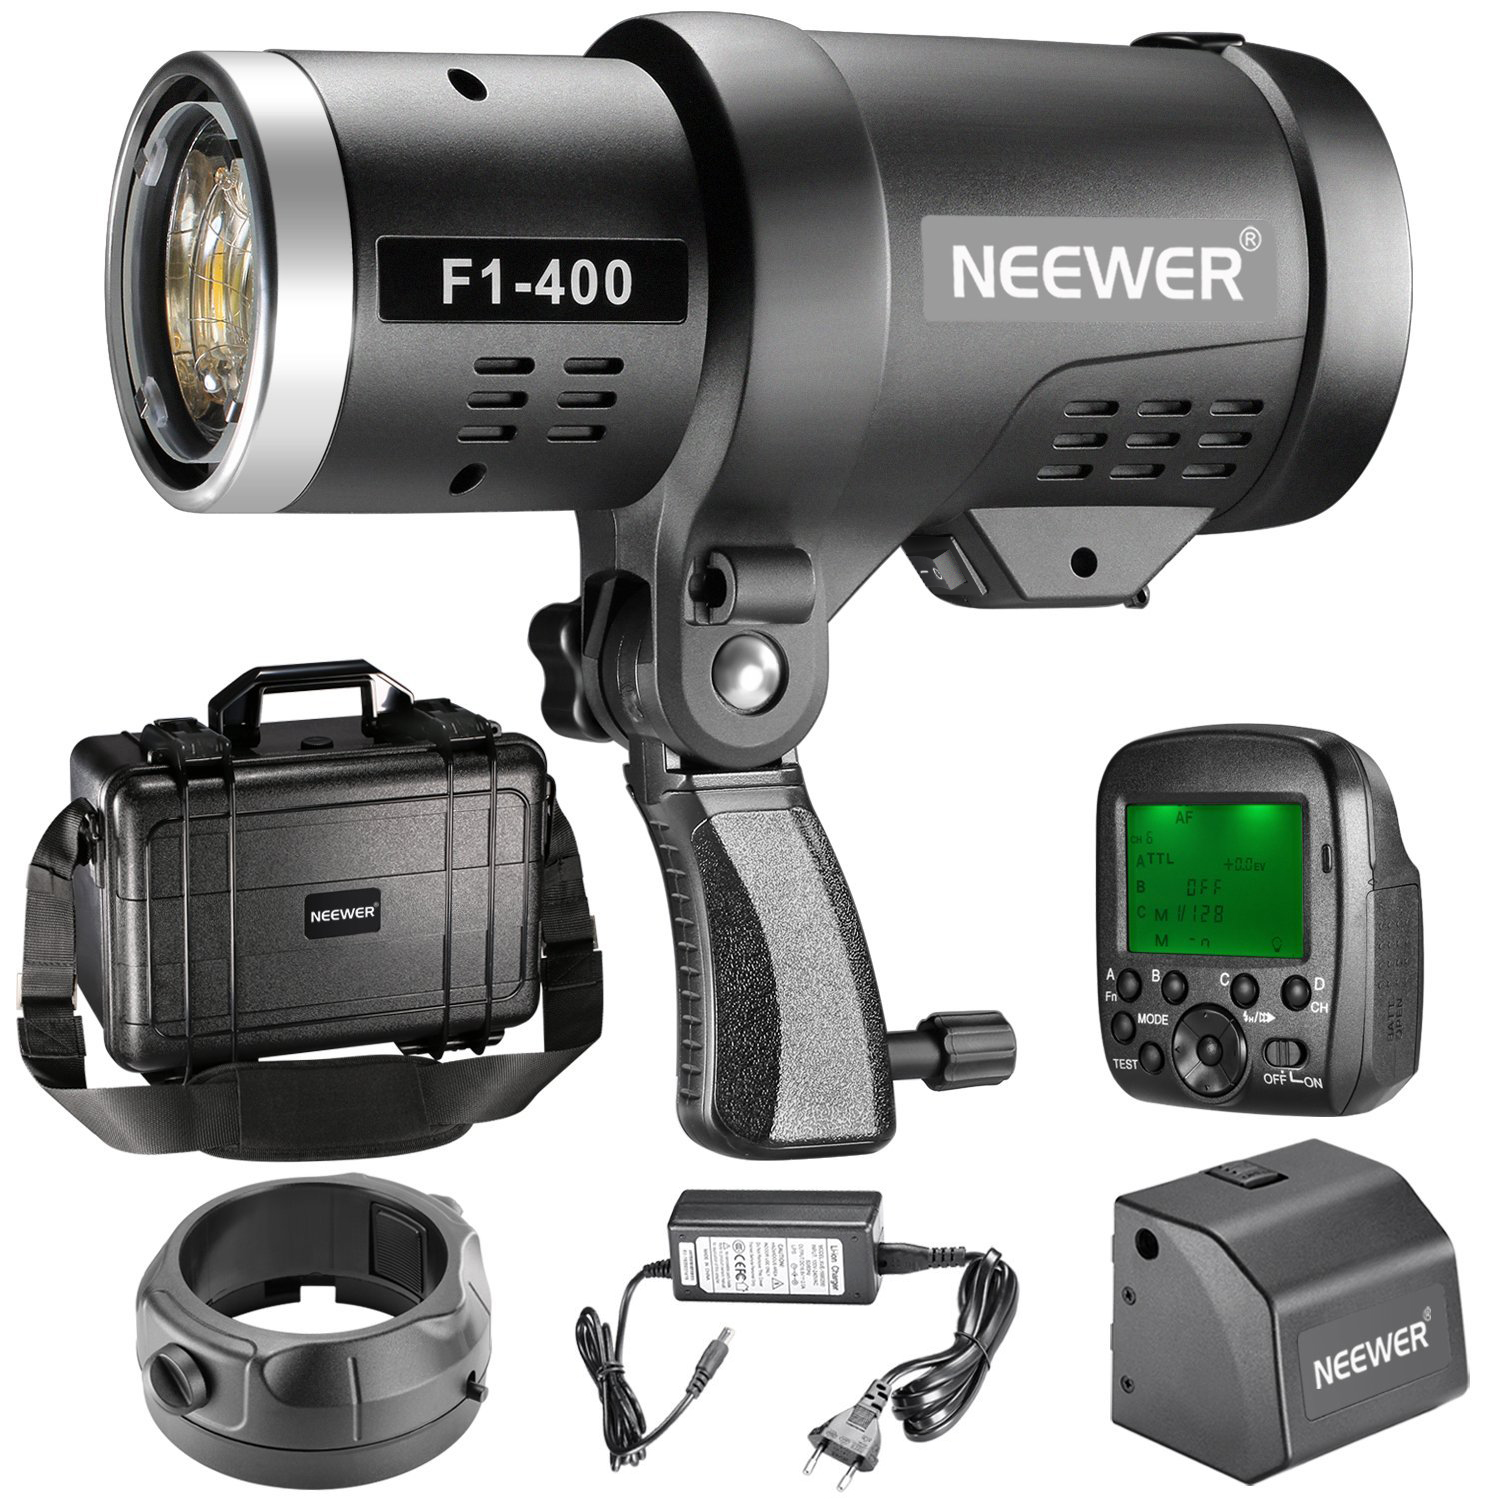 Neewer Dual TTL Outdoor Flash Strobe Light for Canon Nikon DSLR Camera,with 2.4G Wireless Trigger+3200mAh Rechargeable Battery to Provide 350 Full Power Flash Recycle in 0.1-2.5s Bowens Mount F1-400 Image